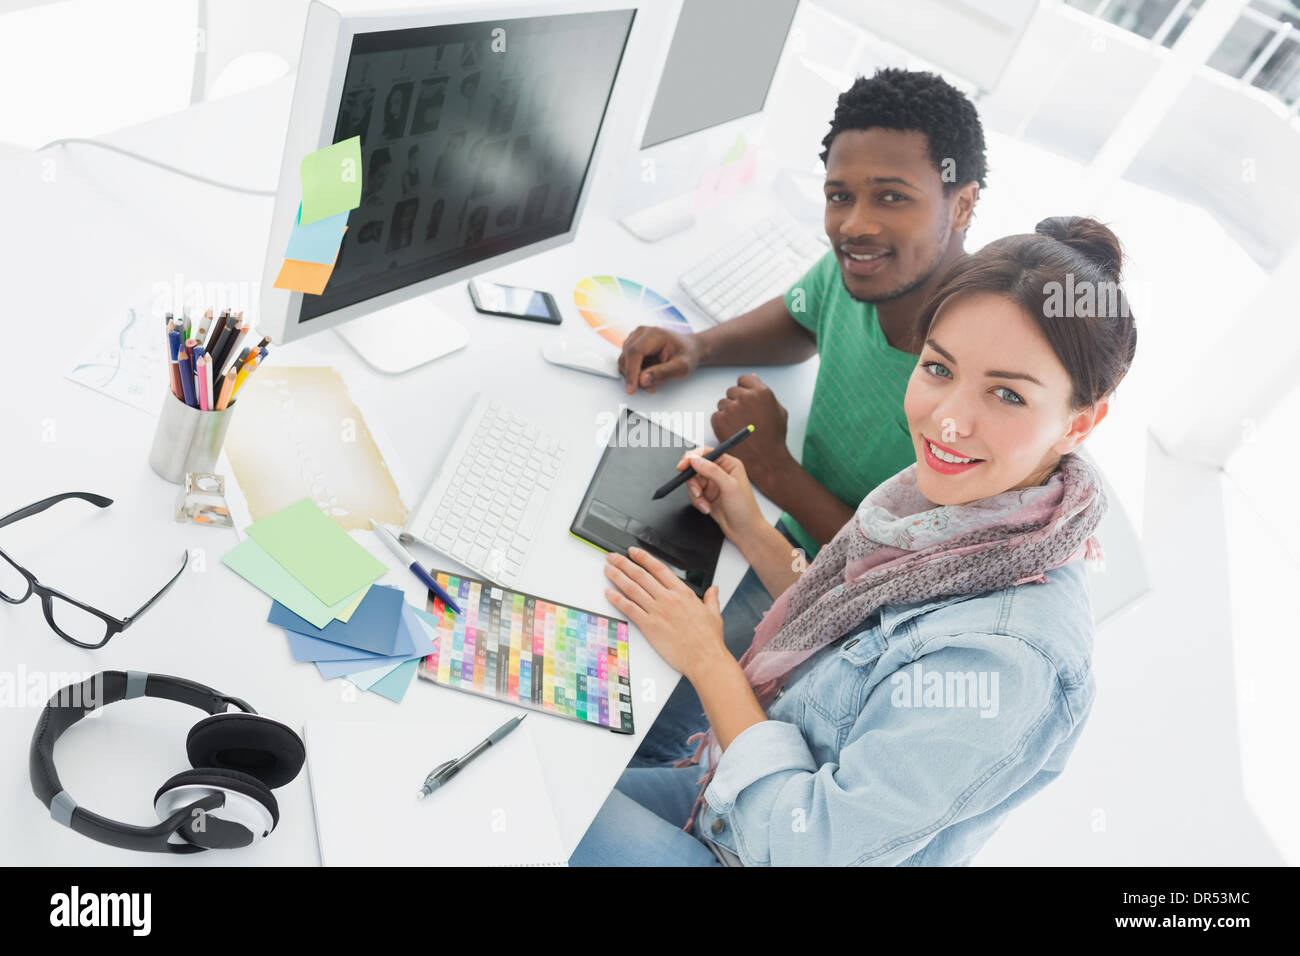 Artist with colleague drawing something on graphic tablet - Stock Image